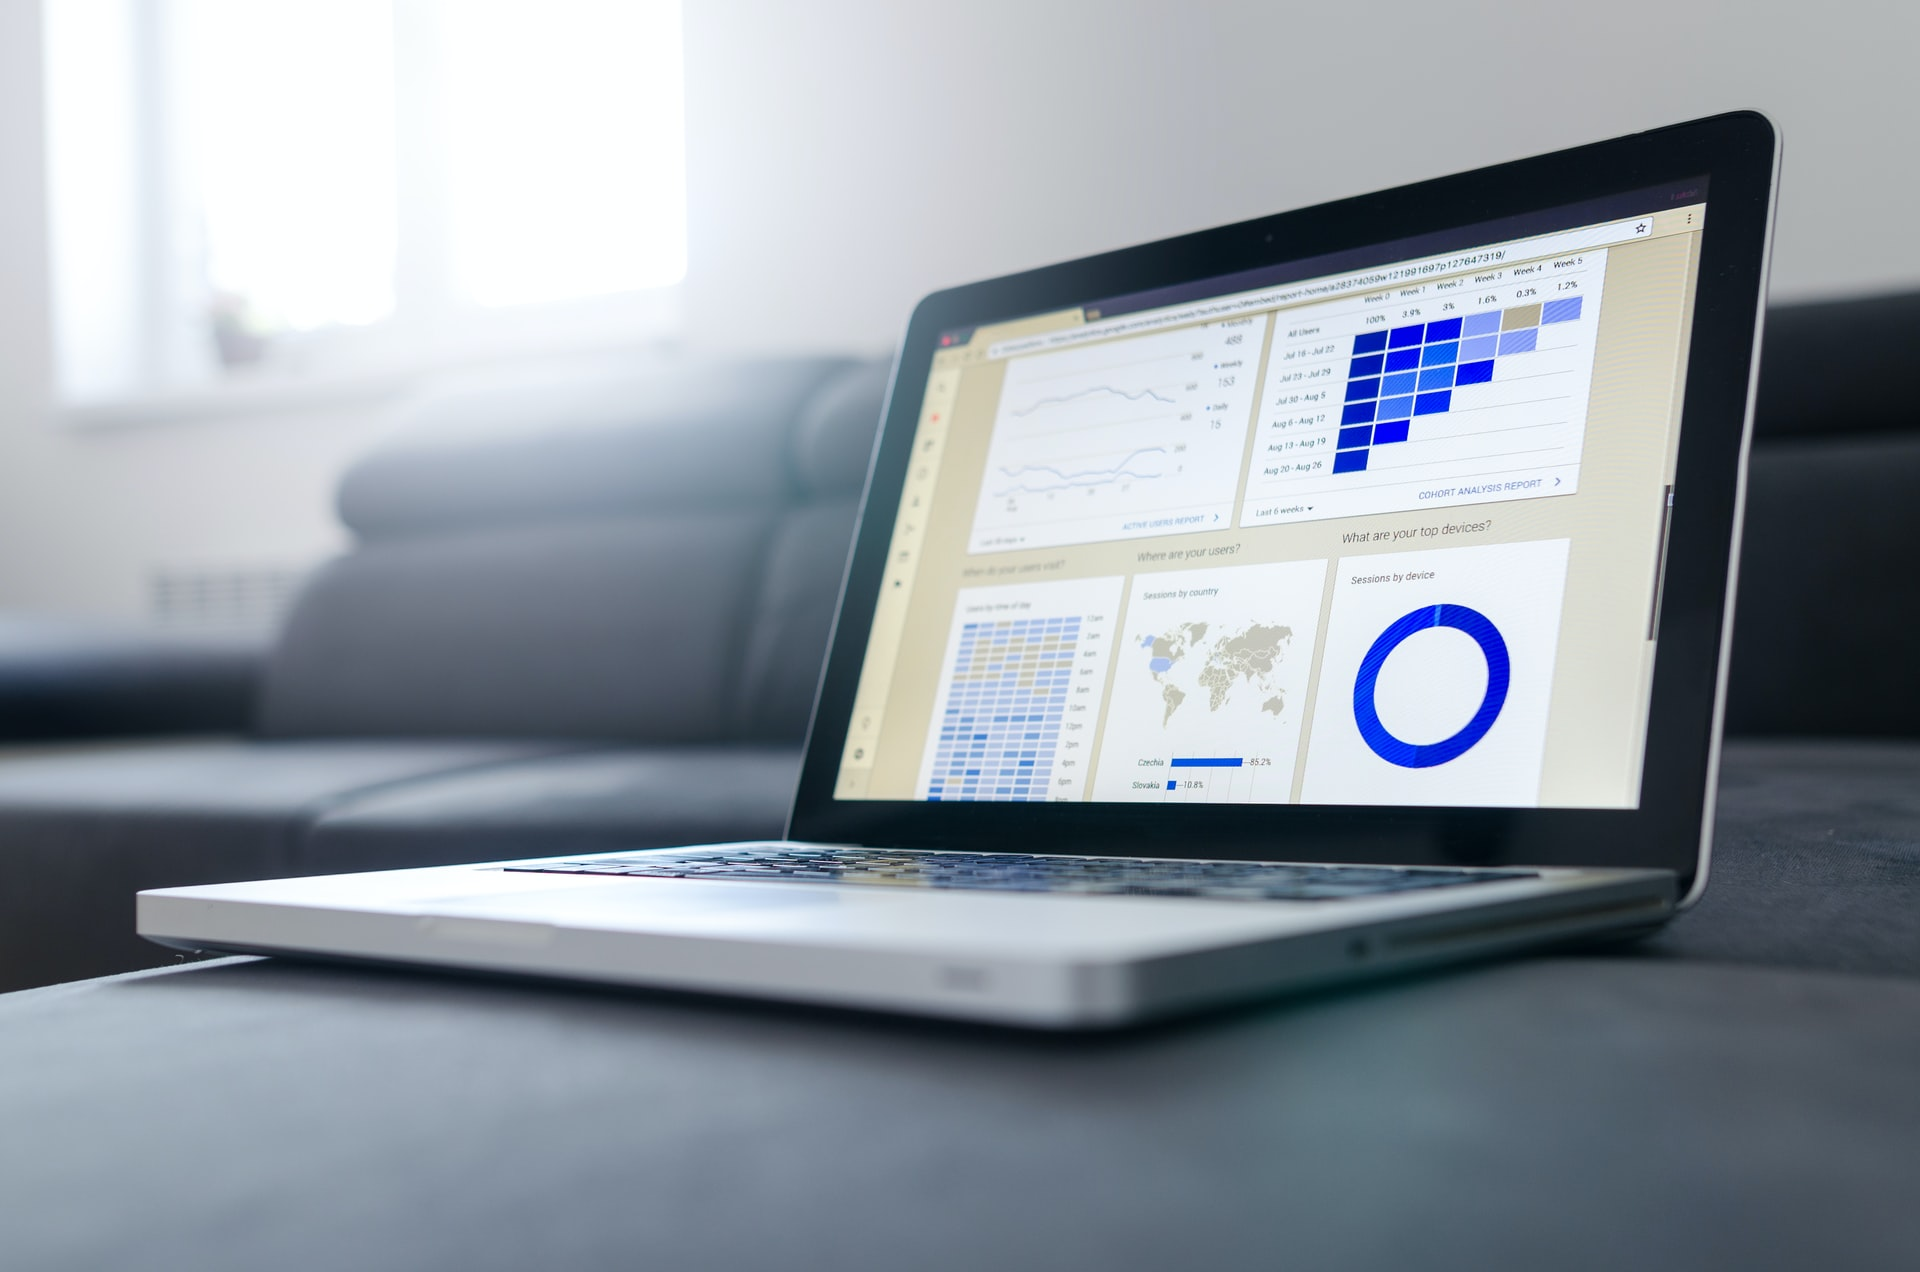 The role of data governance and master data in a business